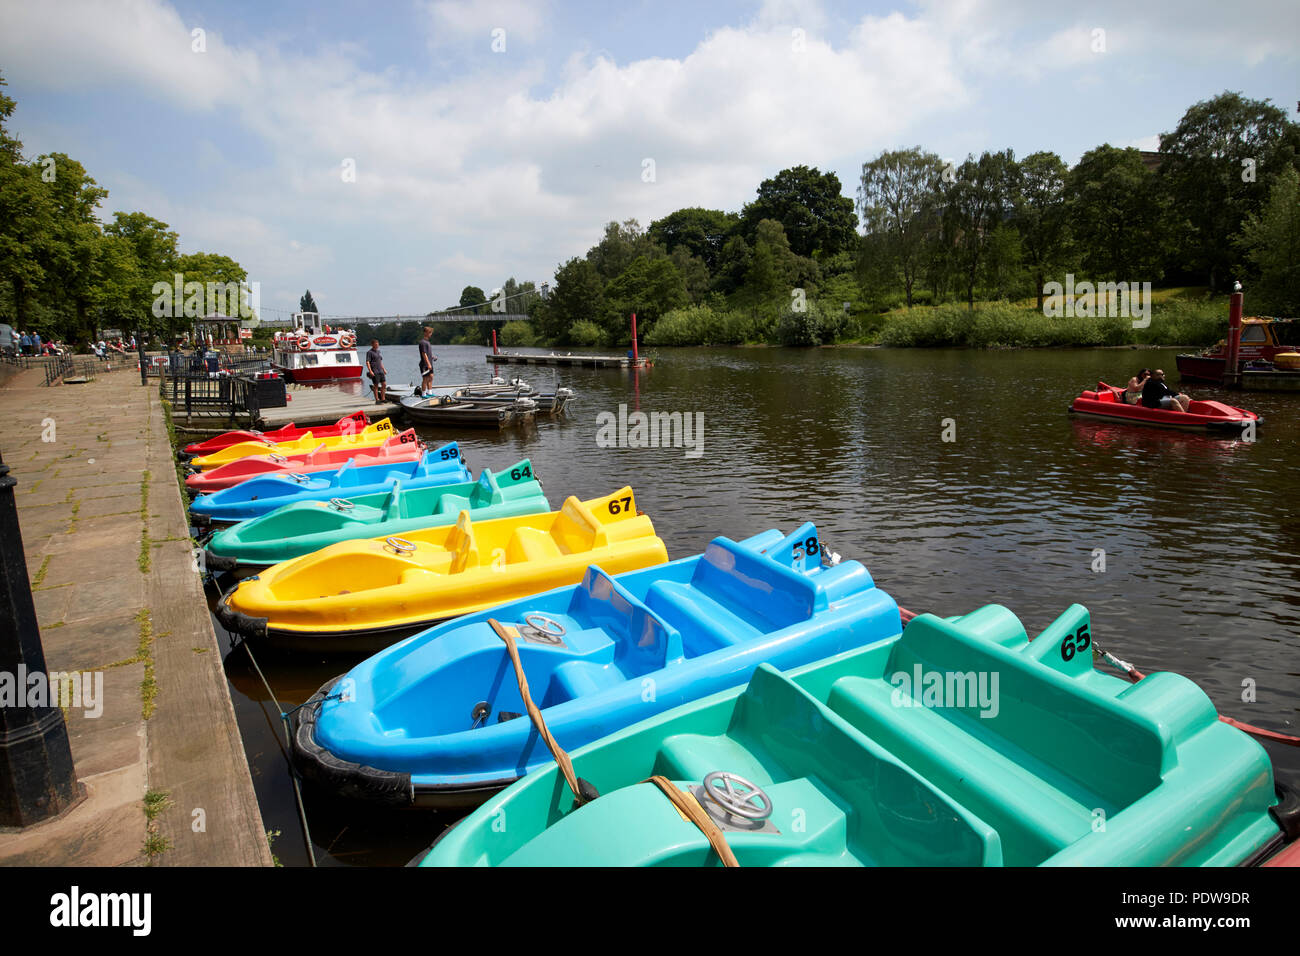 pedal boats for hire on the river dee in chester cheshire england uk Stock Photo